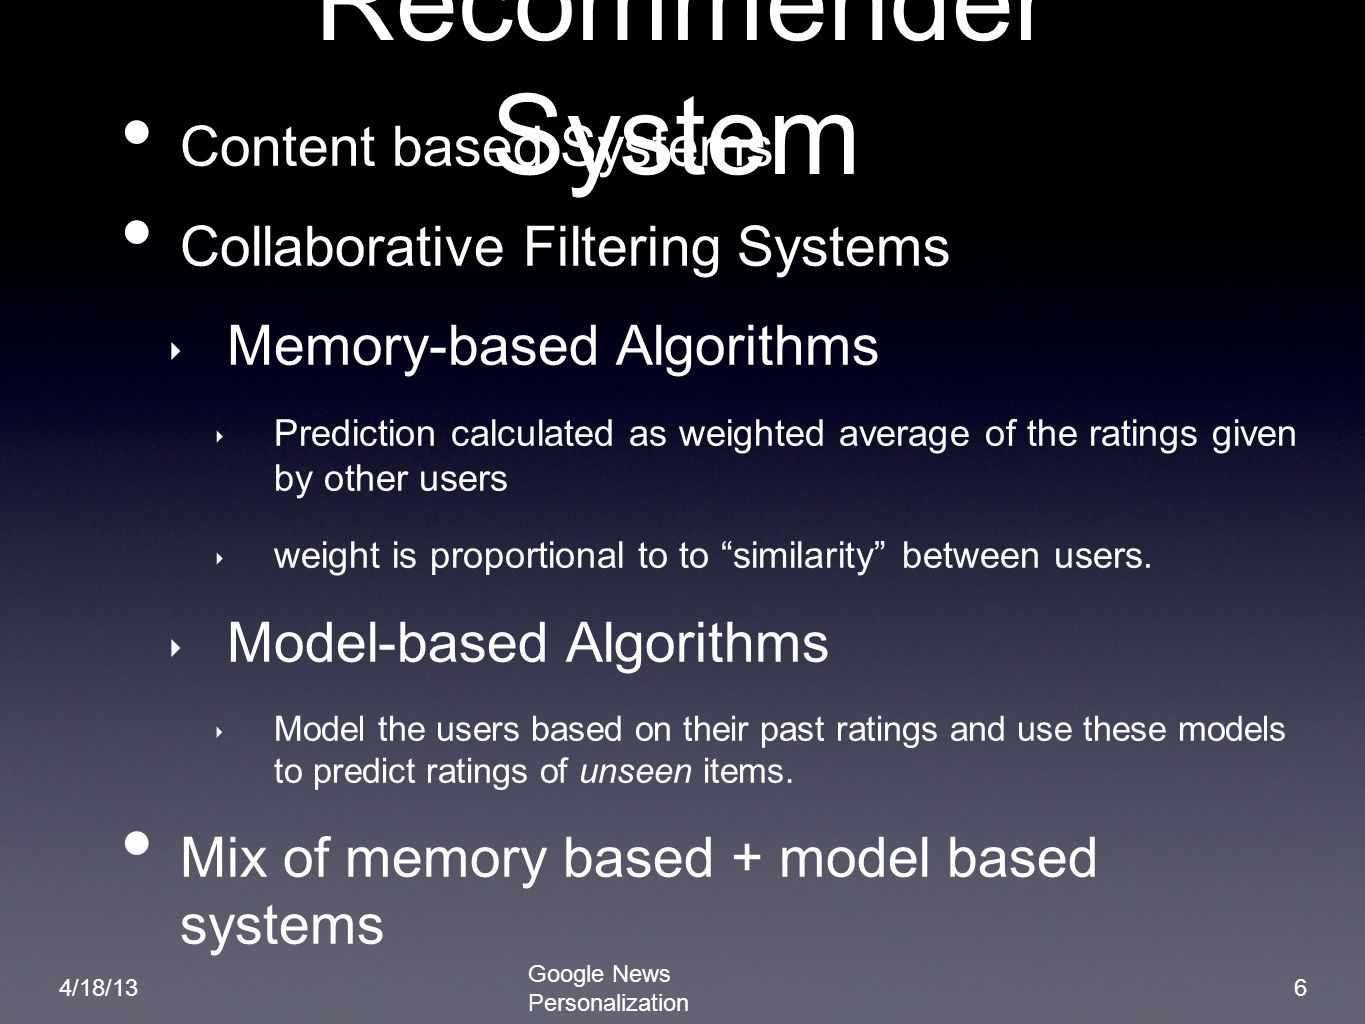 Recommender System Content based Systems